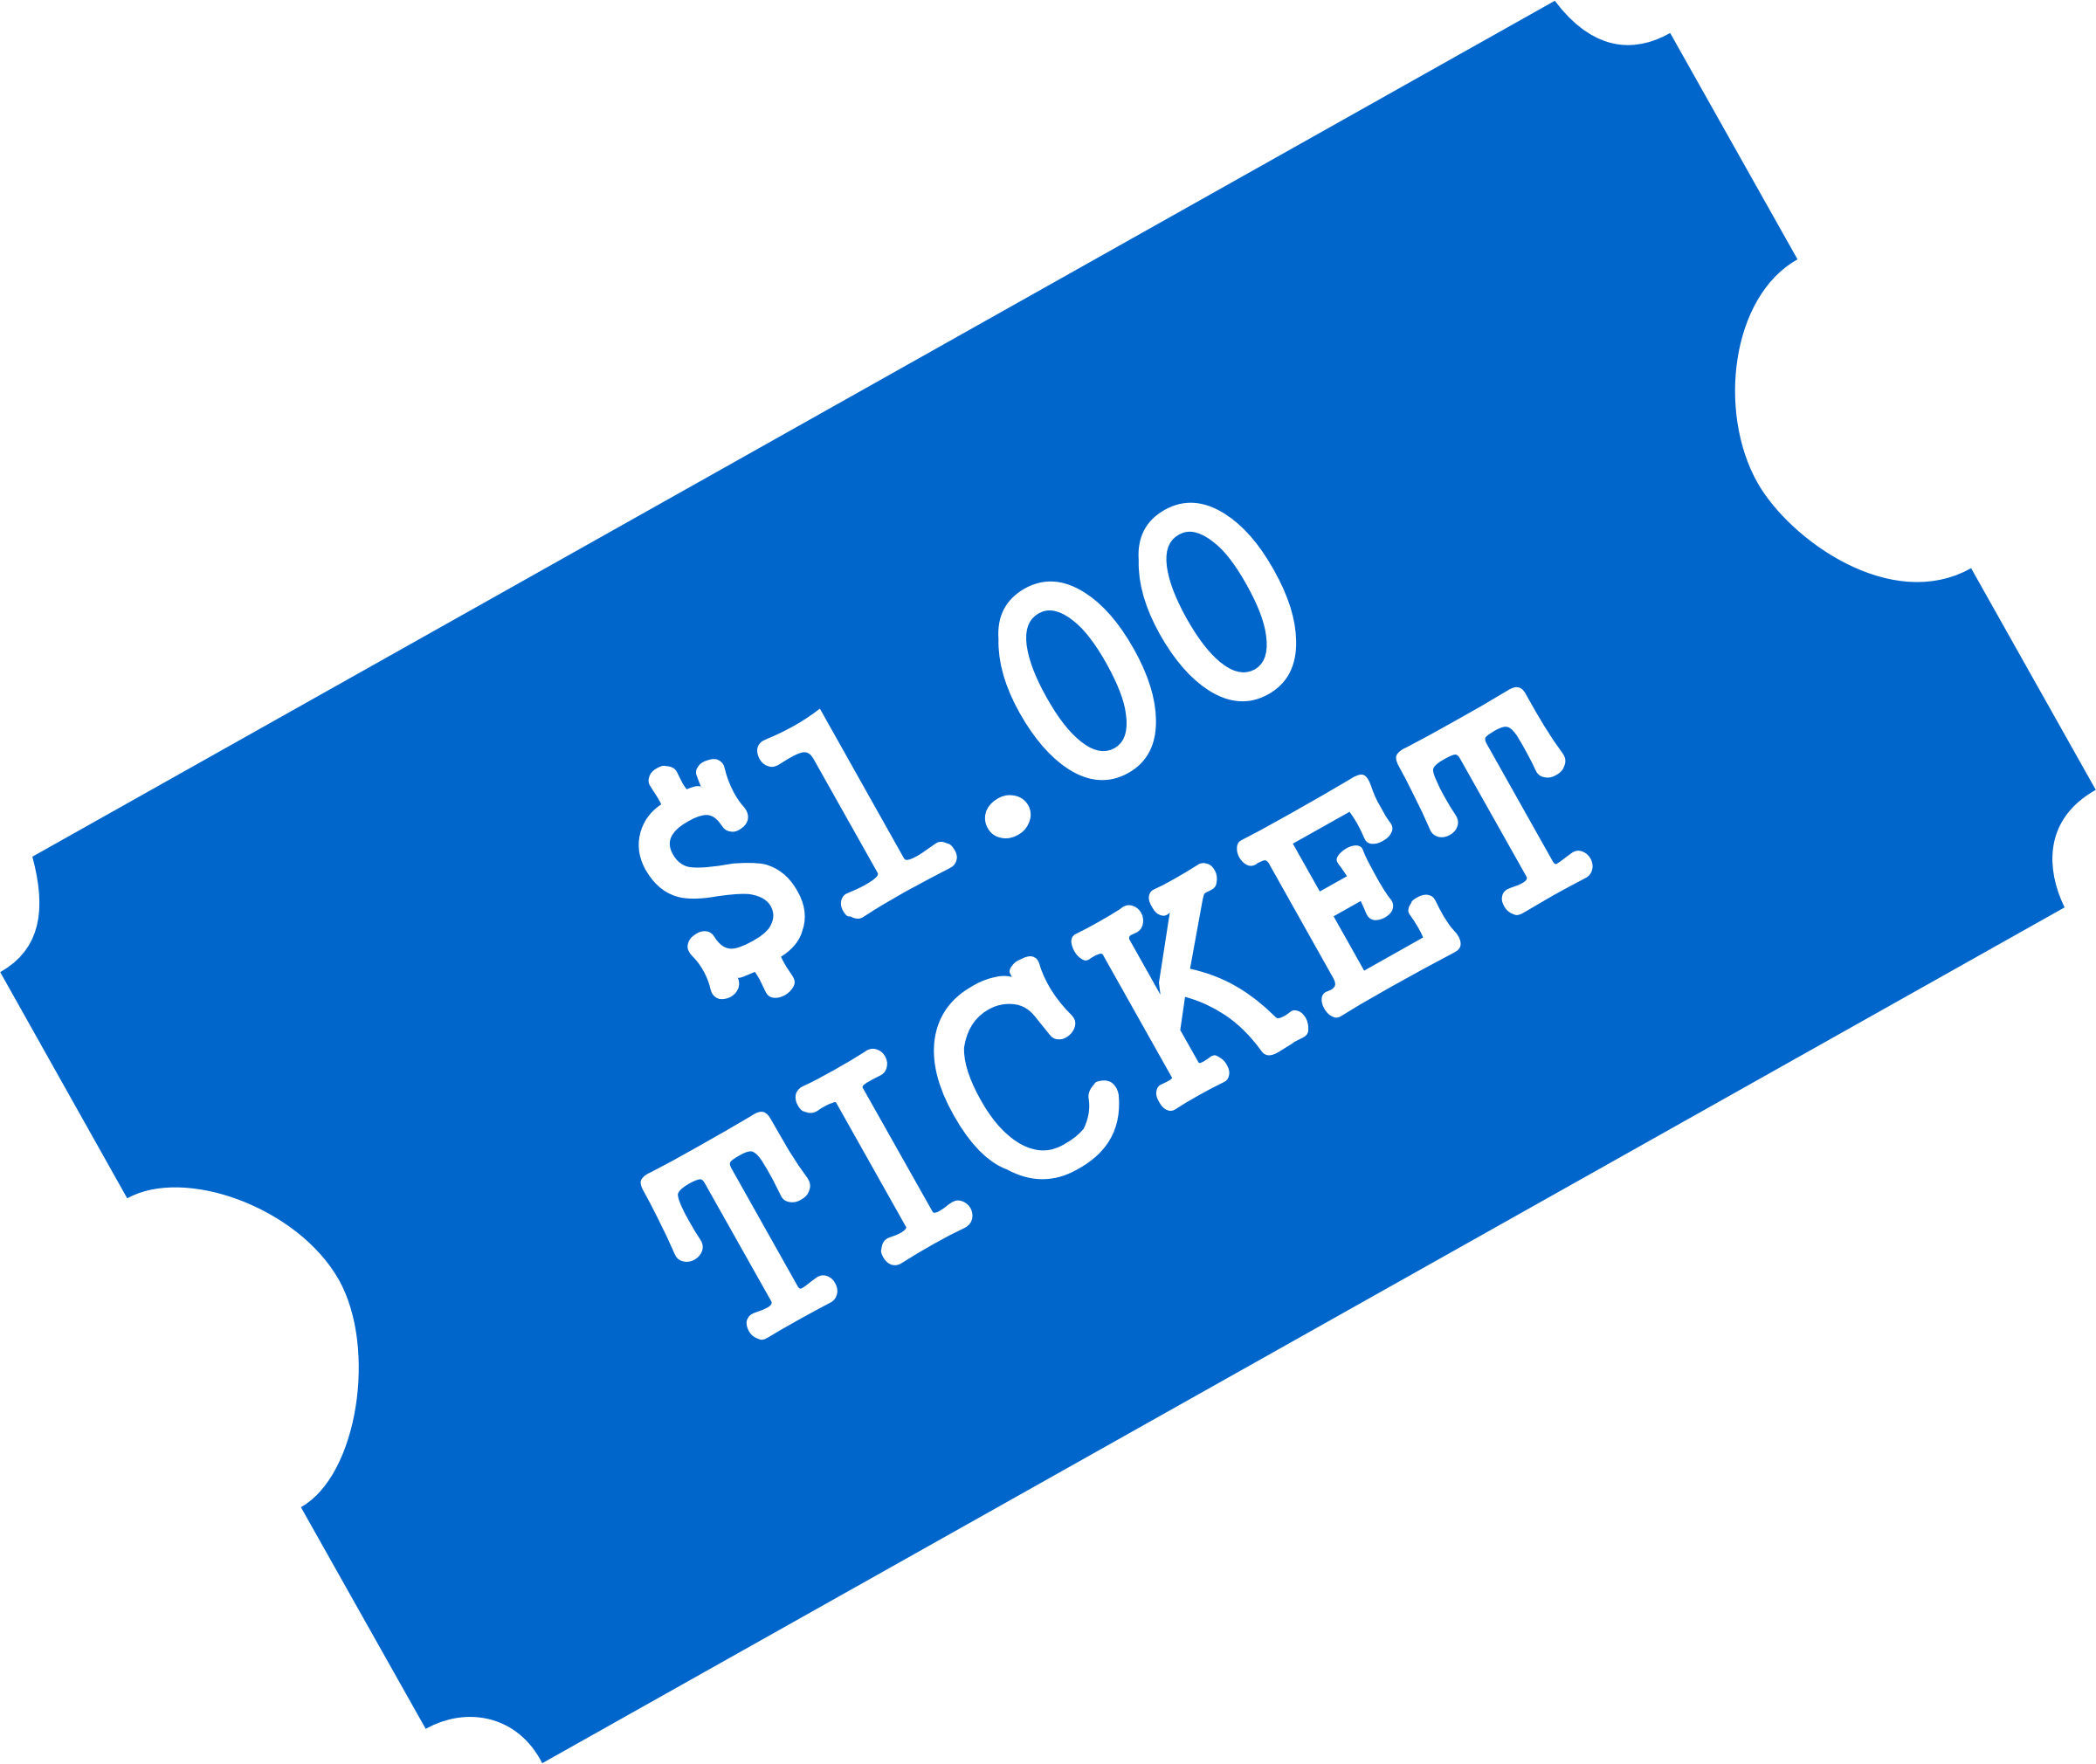 Ticket clipart silent auction. Tickets carnival frames illustrations